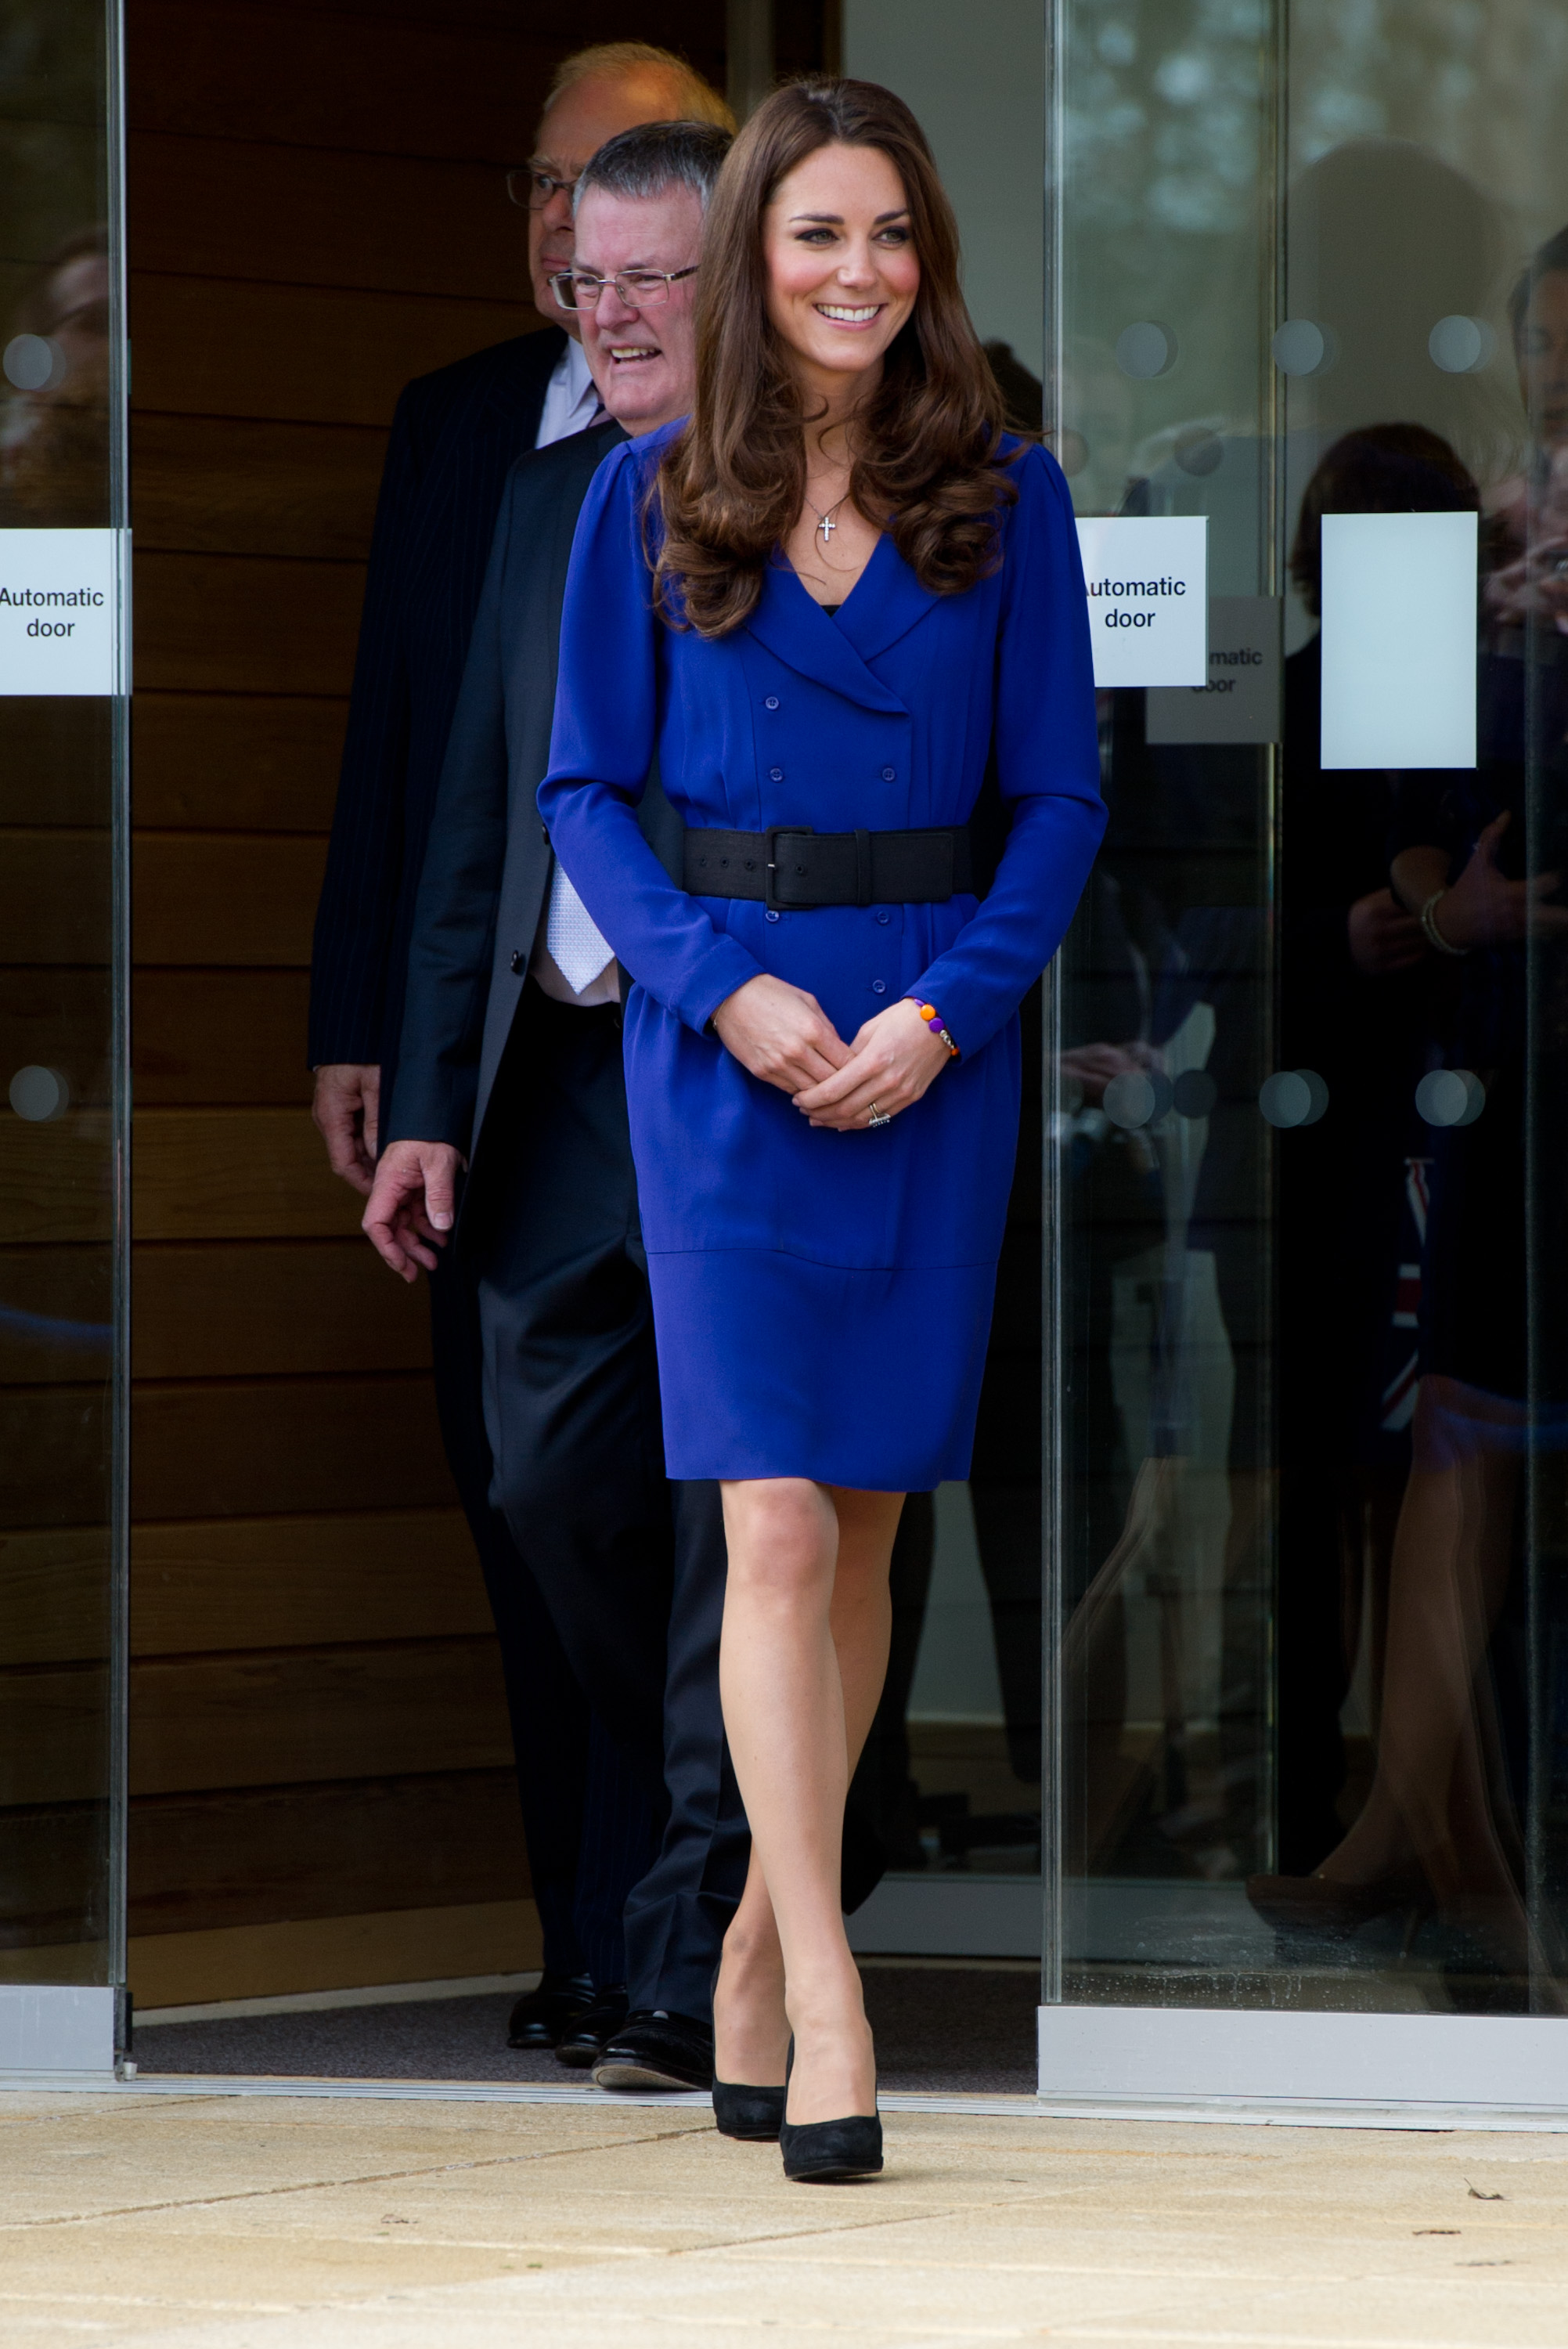 <strong>Speaking Solo</strong>                                   Catherine, the Duchess of Cambridge gave her first solo official remarks as a royal at the opening of the Treehouse Children's Hospice on March 19, 2012, in Ipswich, England. She wore a blue Reiss frock—the same dress that her mother, Carole Middleton, wore to the Ascot horse races in 2010.